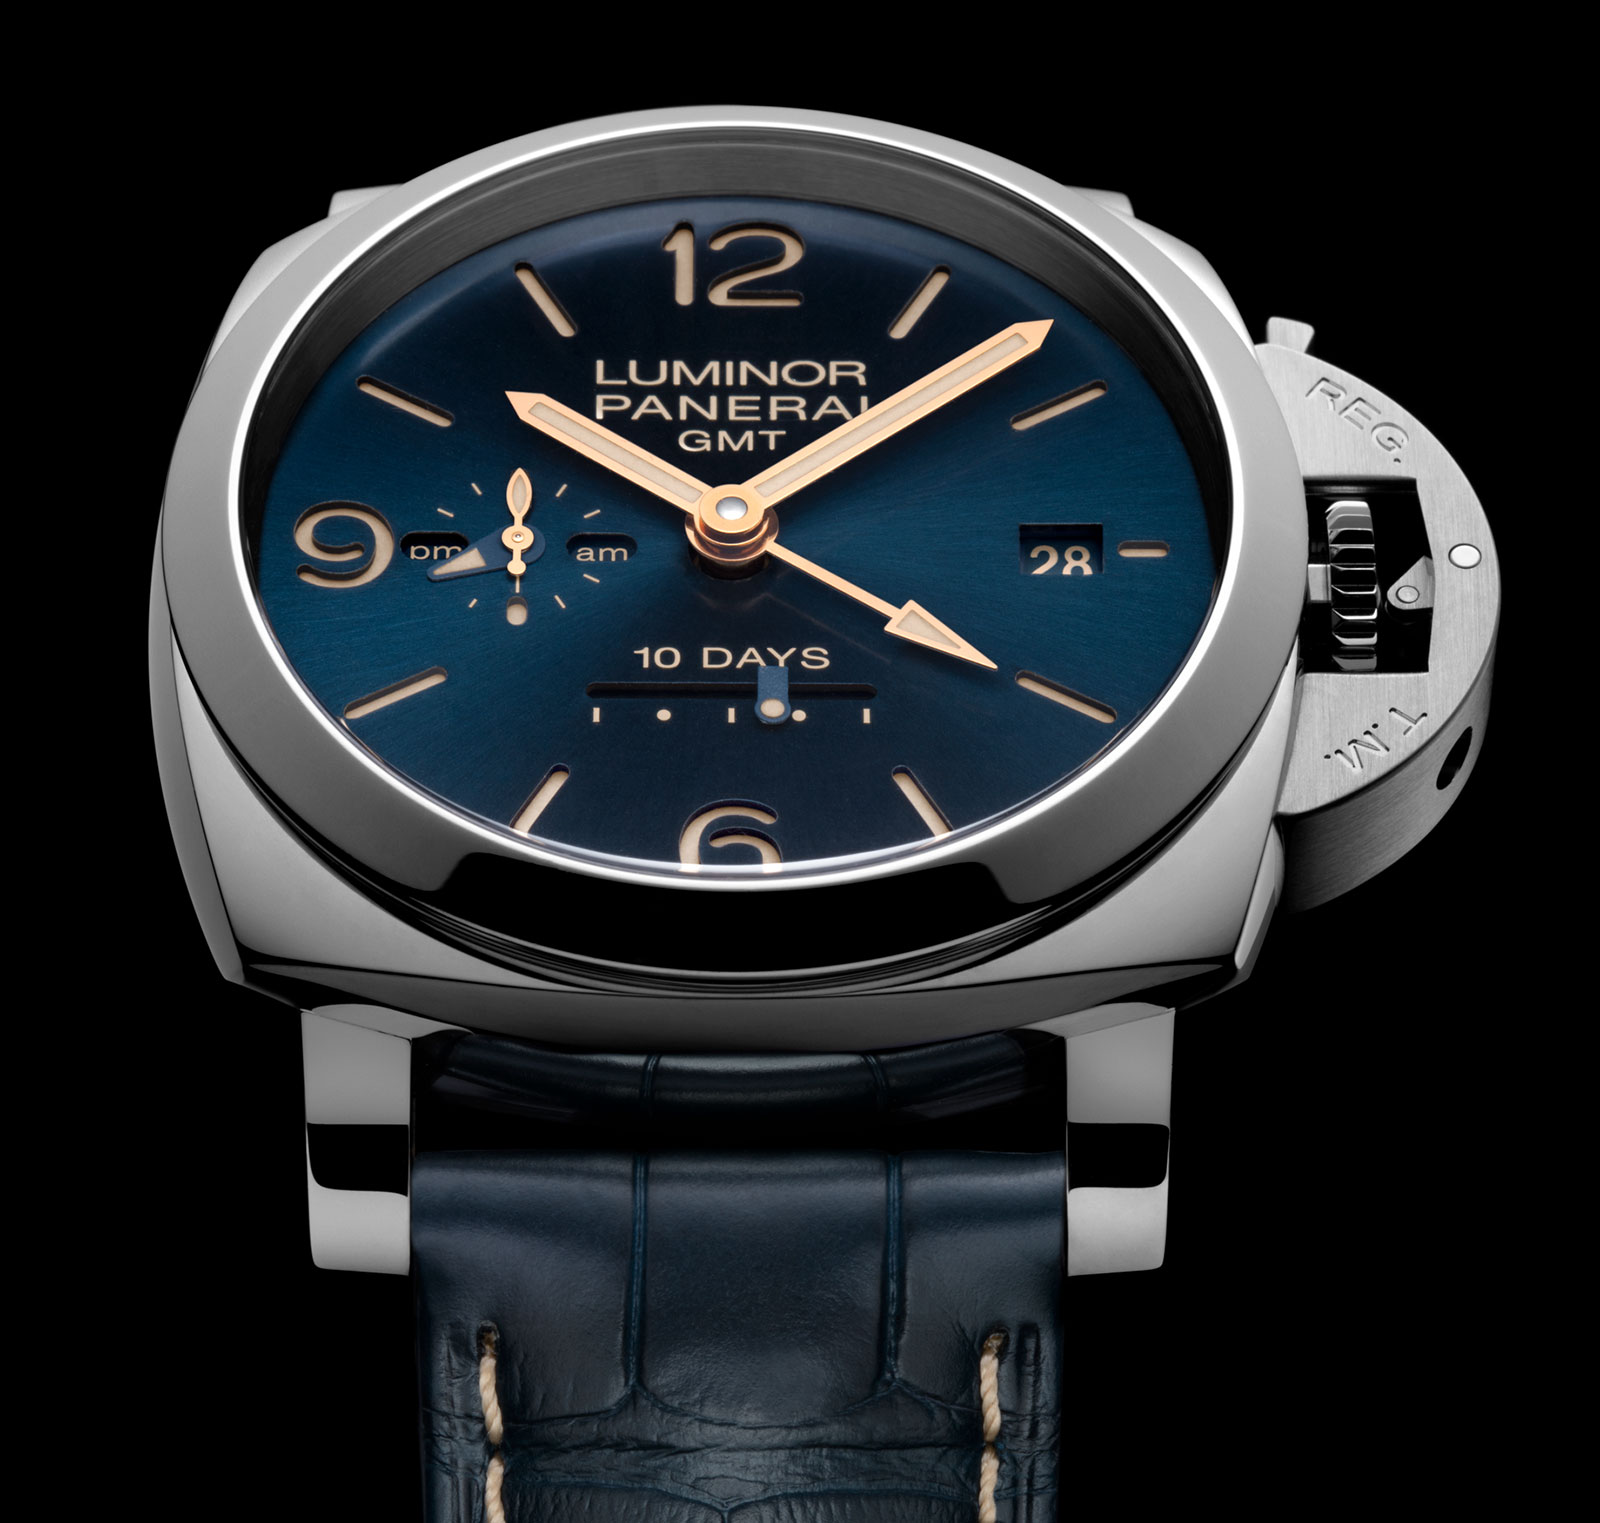 Panerai Luminor 1950 10 Days GMT Automatic (PAM00689)